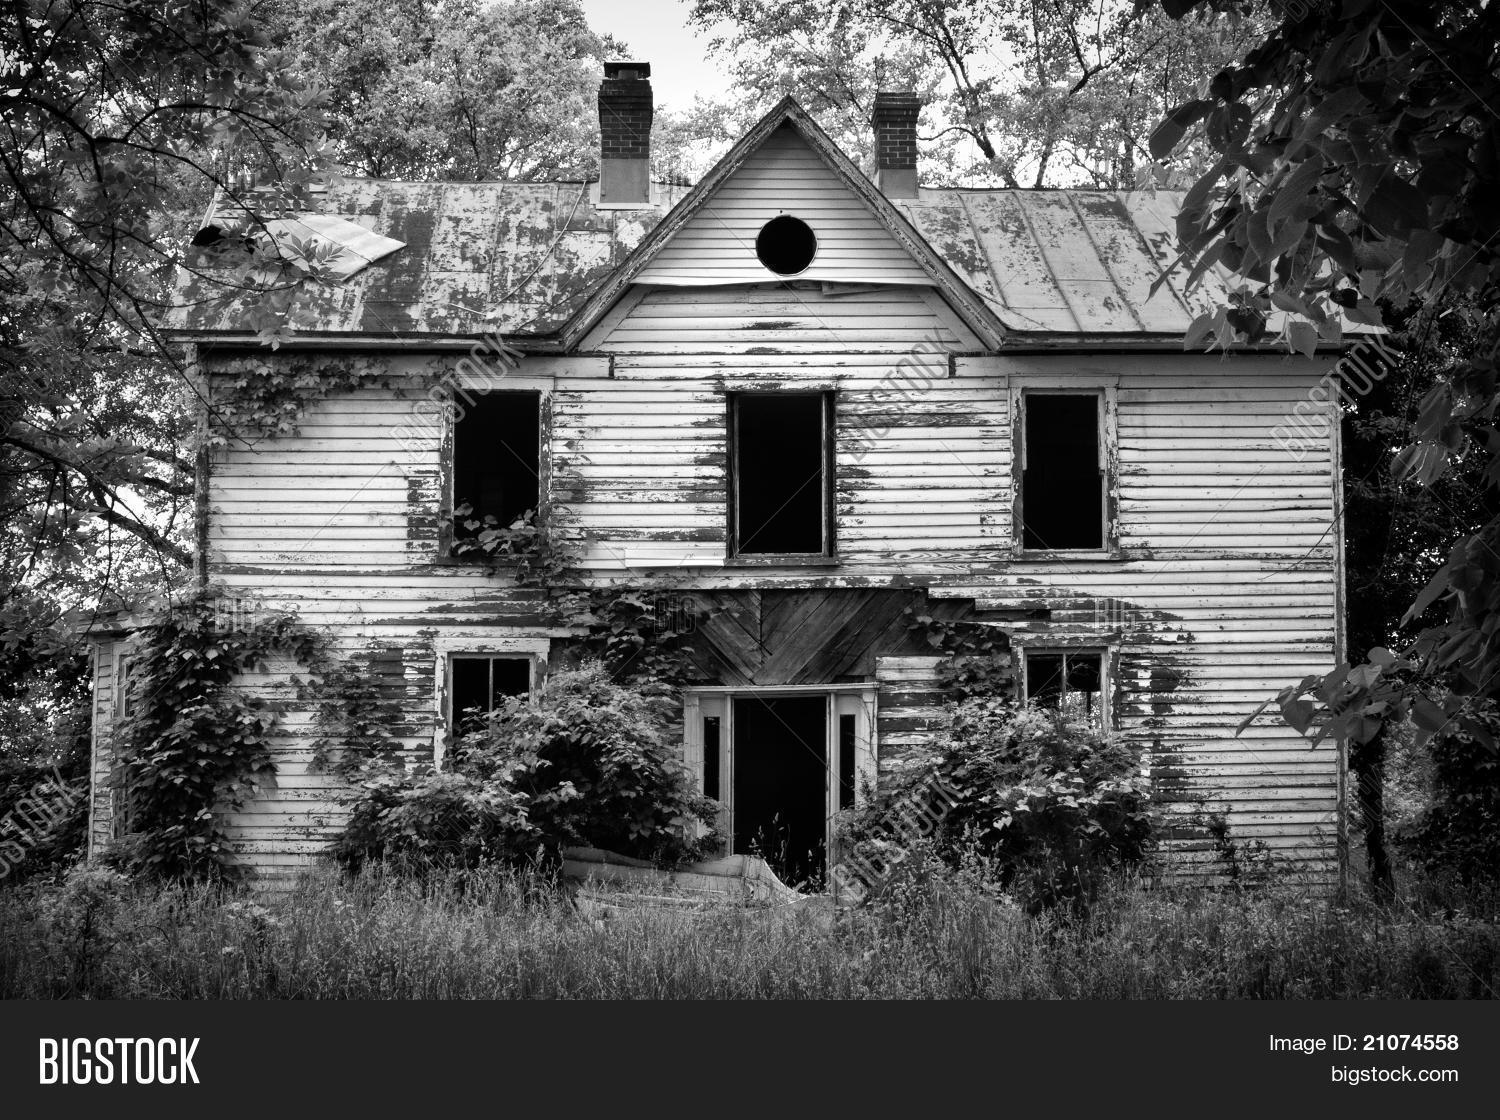 Spooky Old House Image Photo Free Trial